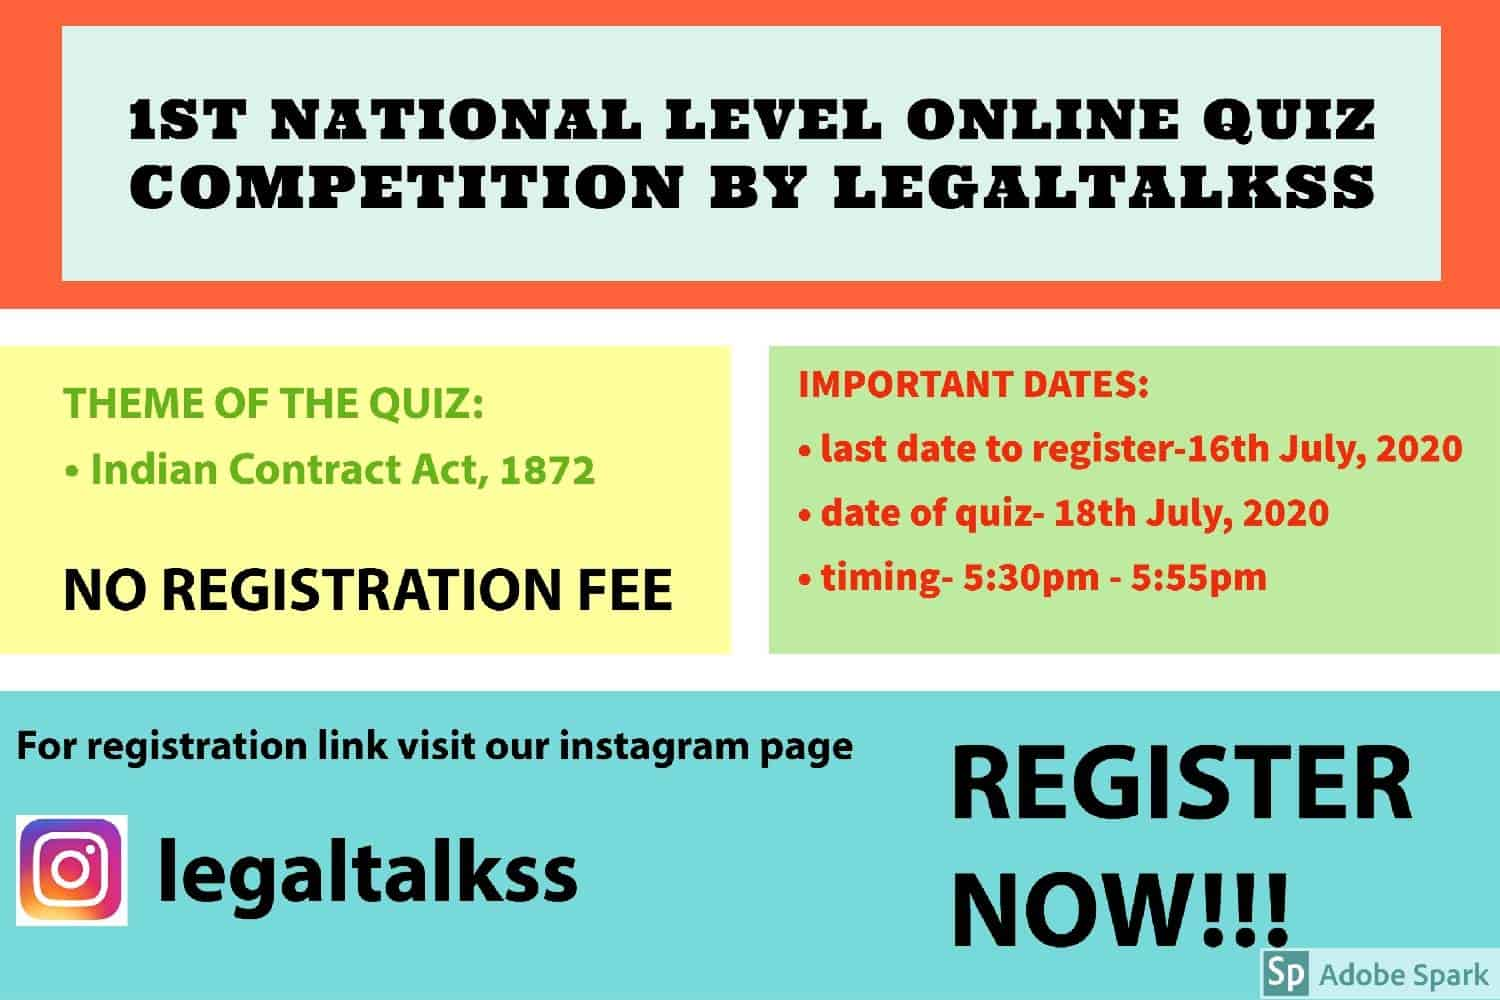 1ST NATIONAL LEVEL ONLINE QUIZ COMPETITION ON CONTRACT LAW BY LEGALTALKSS - NO REGISTRATION FEE- REGISTER BY JULY 16